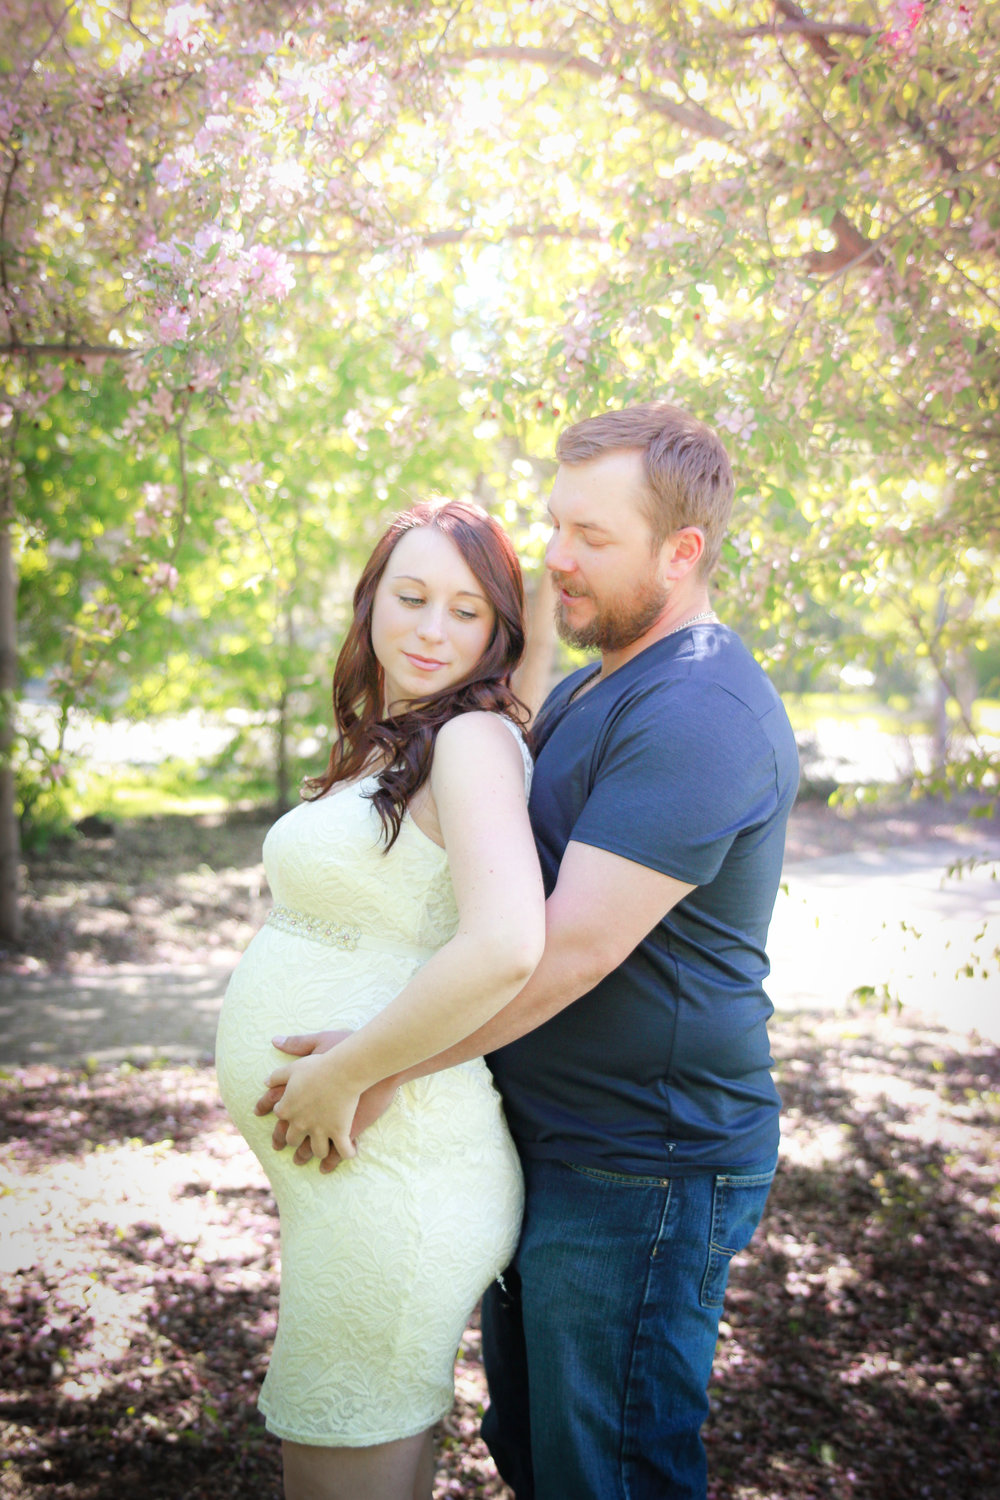 M&P {Expecting!}_WEB-57.jpg